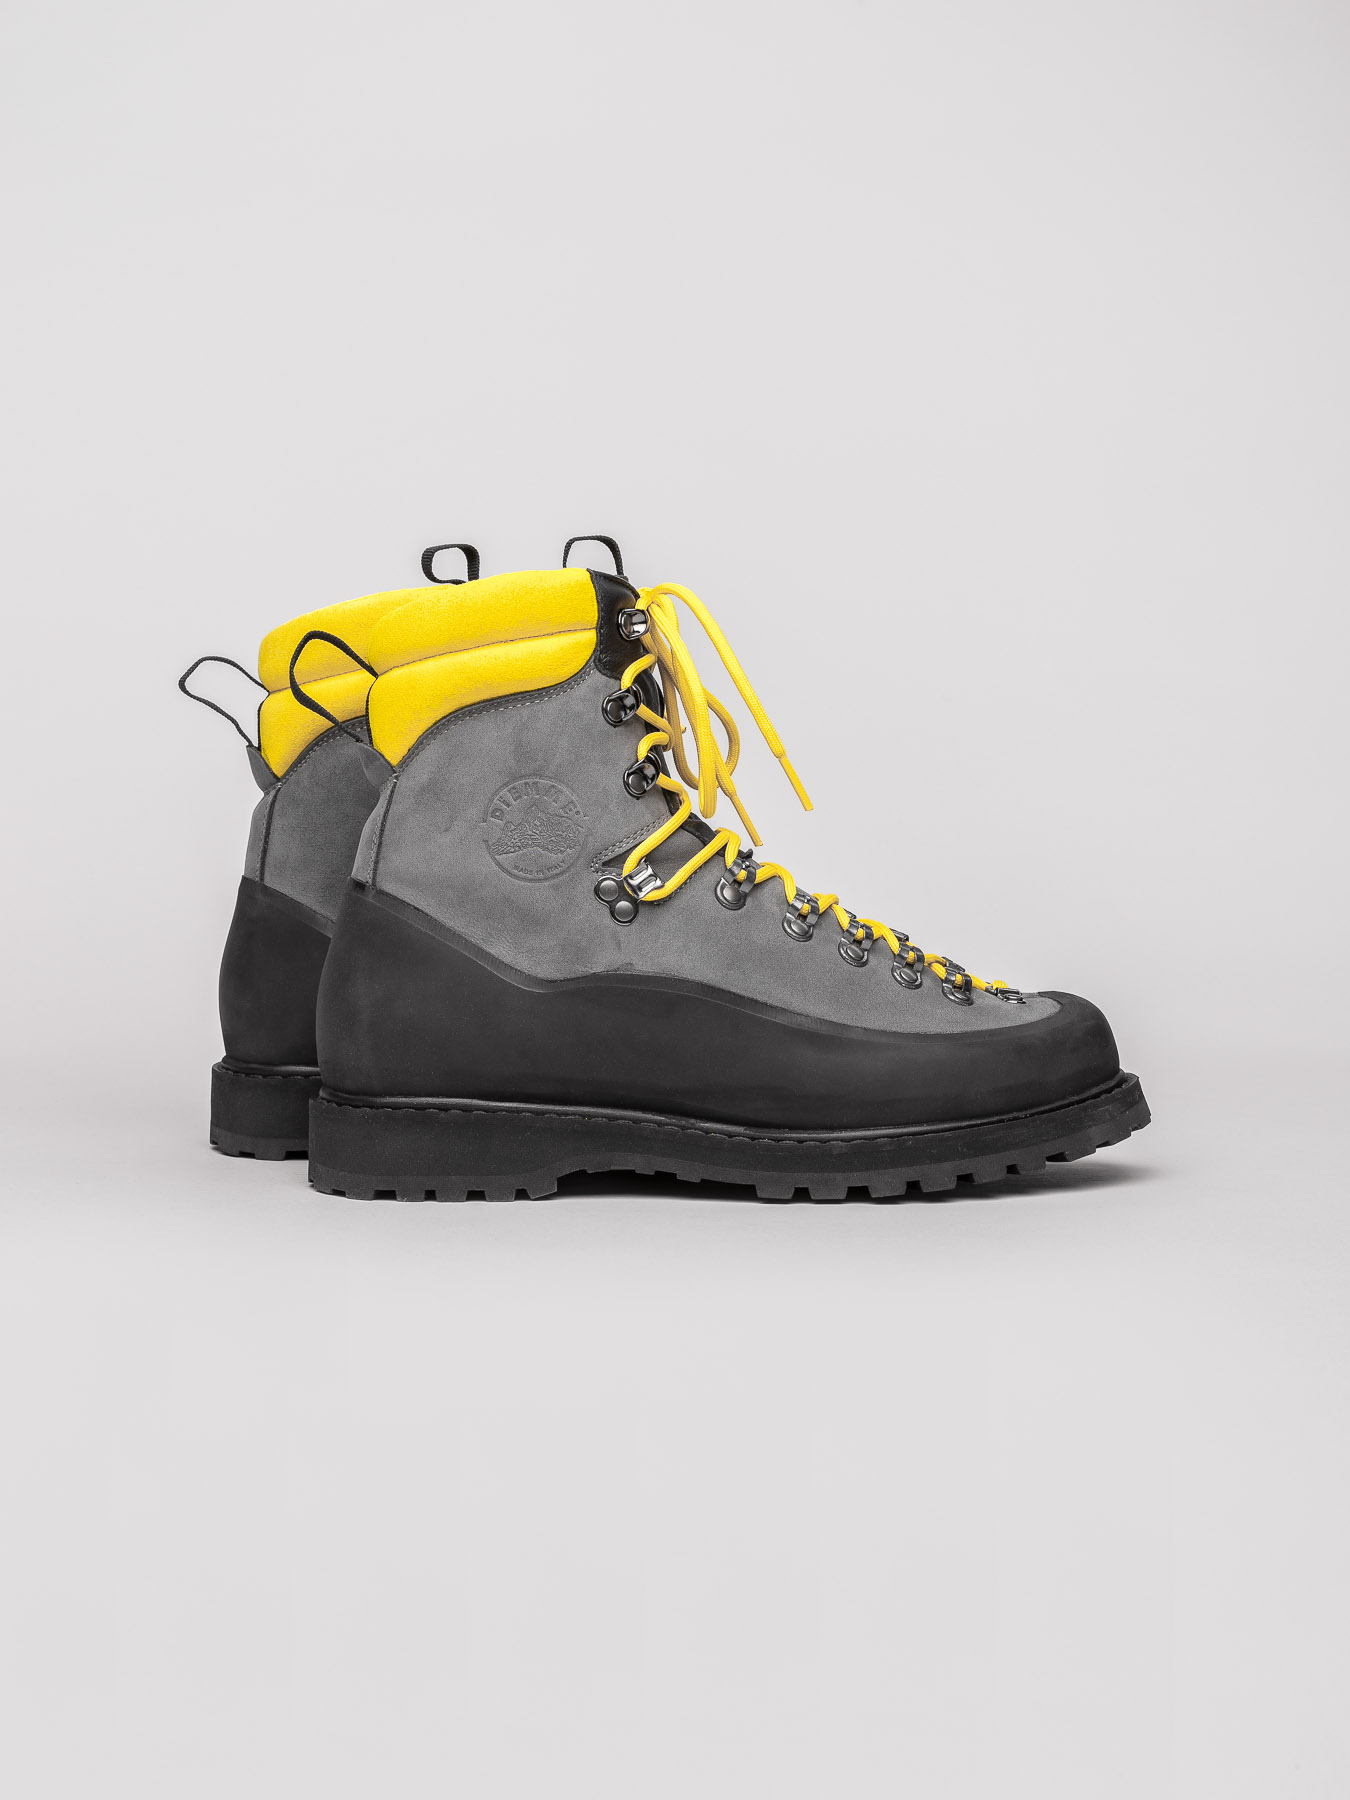 Diemme - Everest Dark Grey - Men High-Altitude Boots